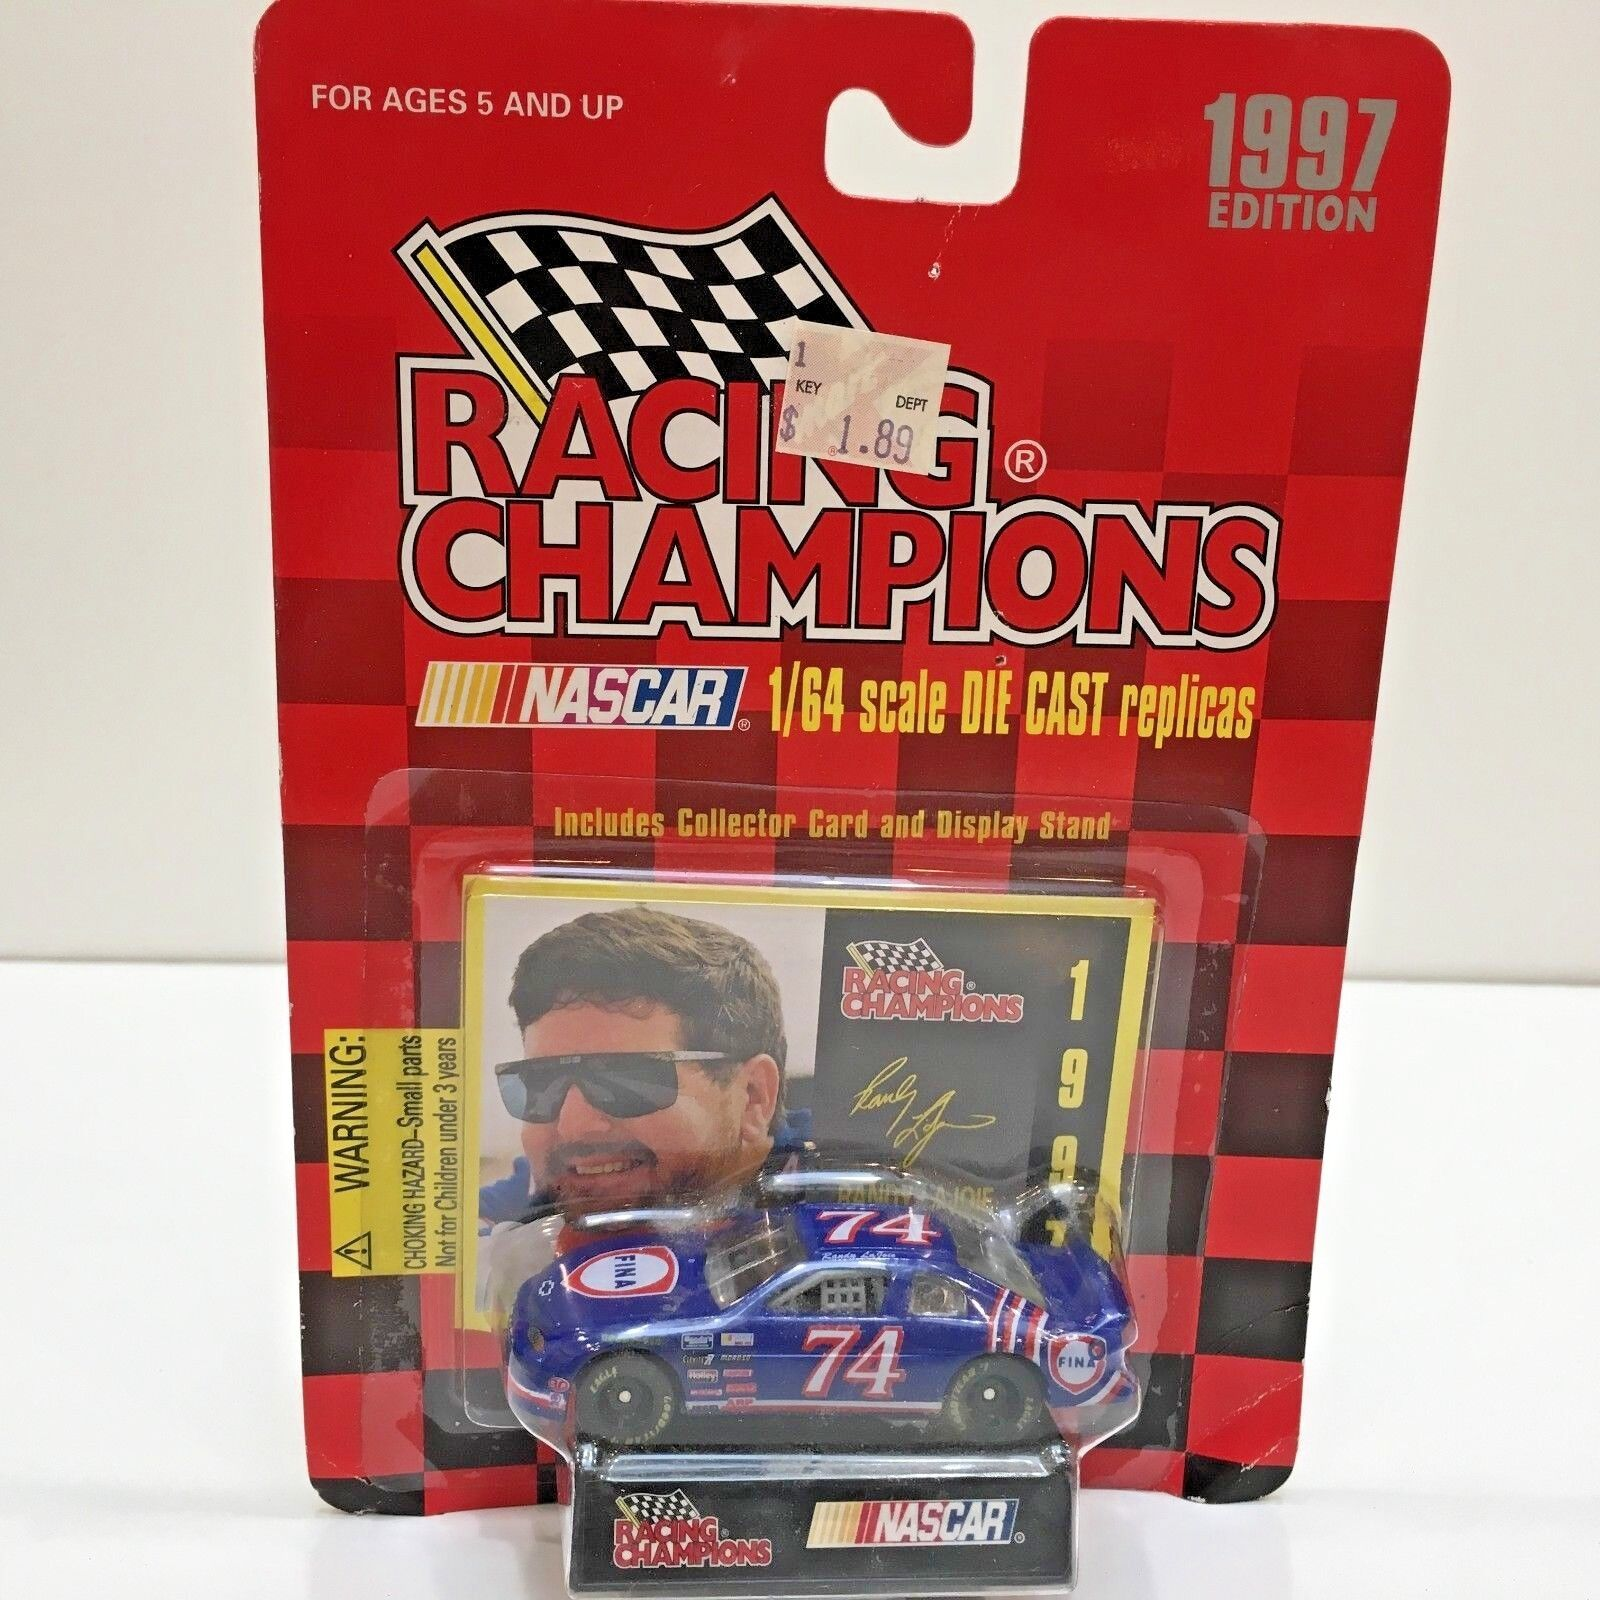 Racing Champions NASCAR  RANDY LAJOIE Edition 1 64 Diecast Car Toy